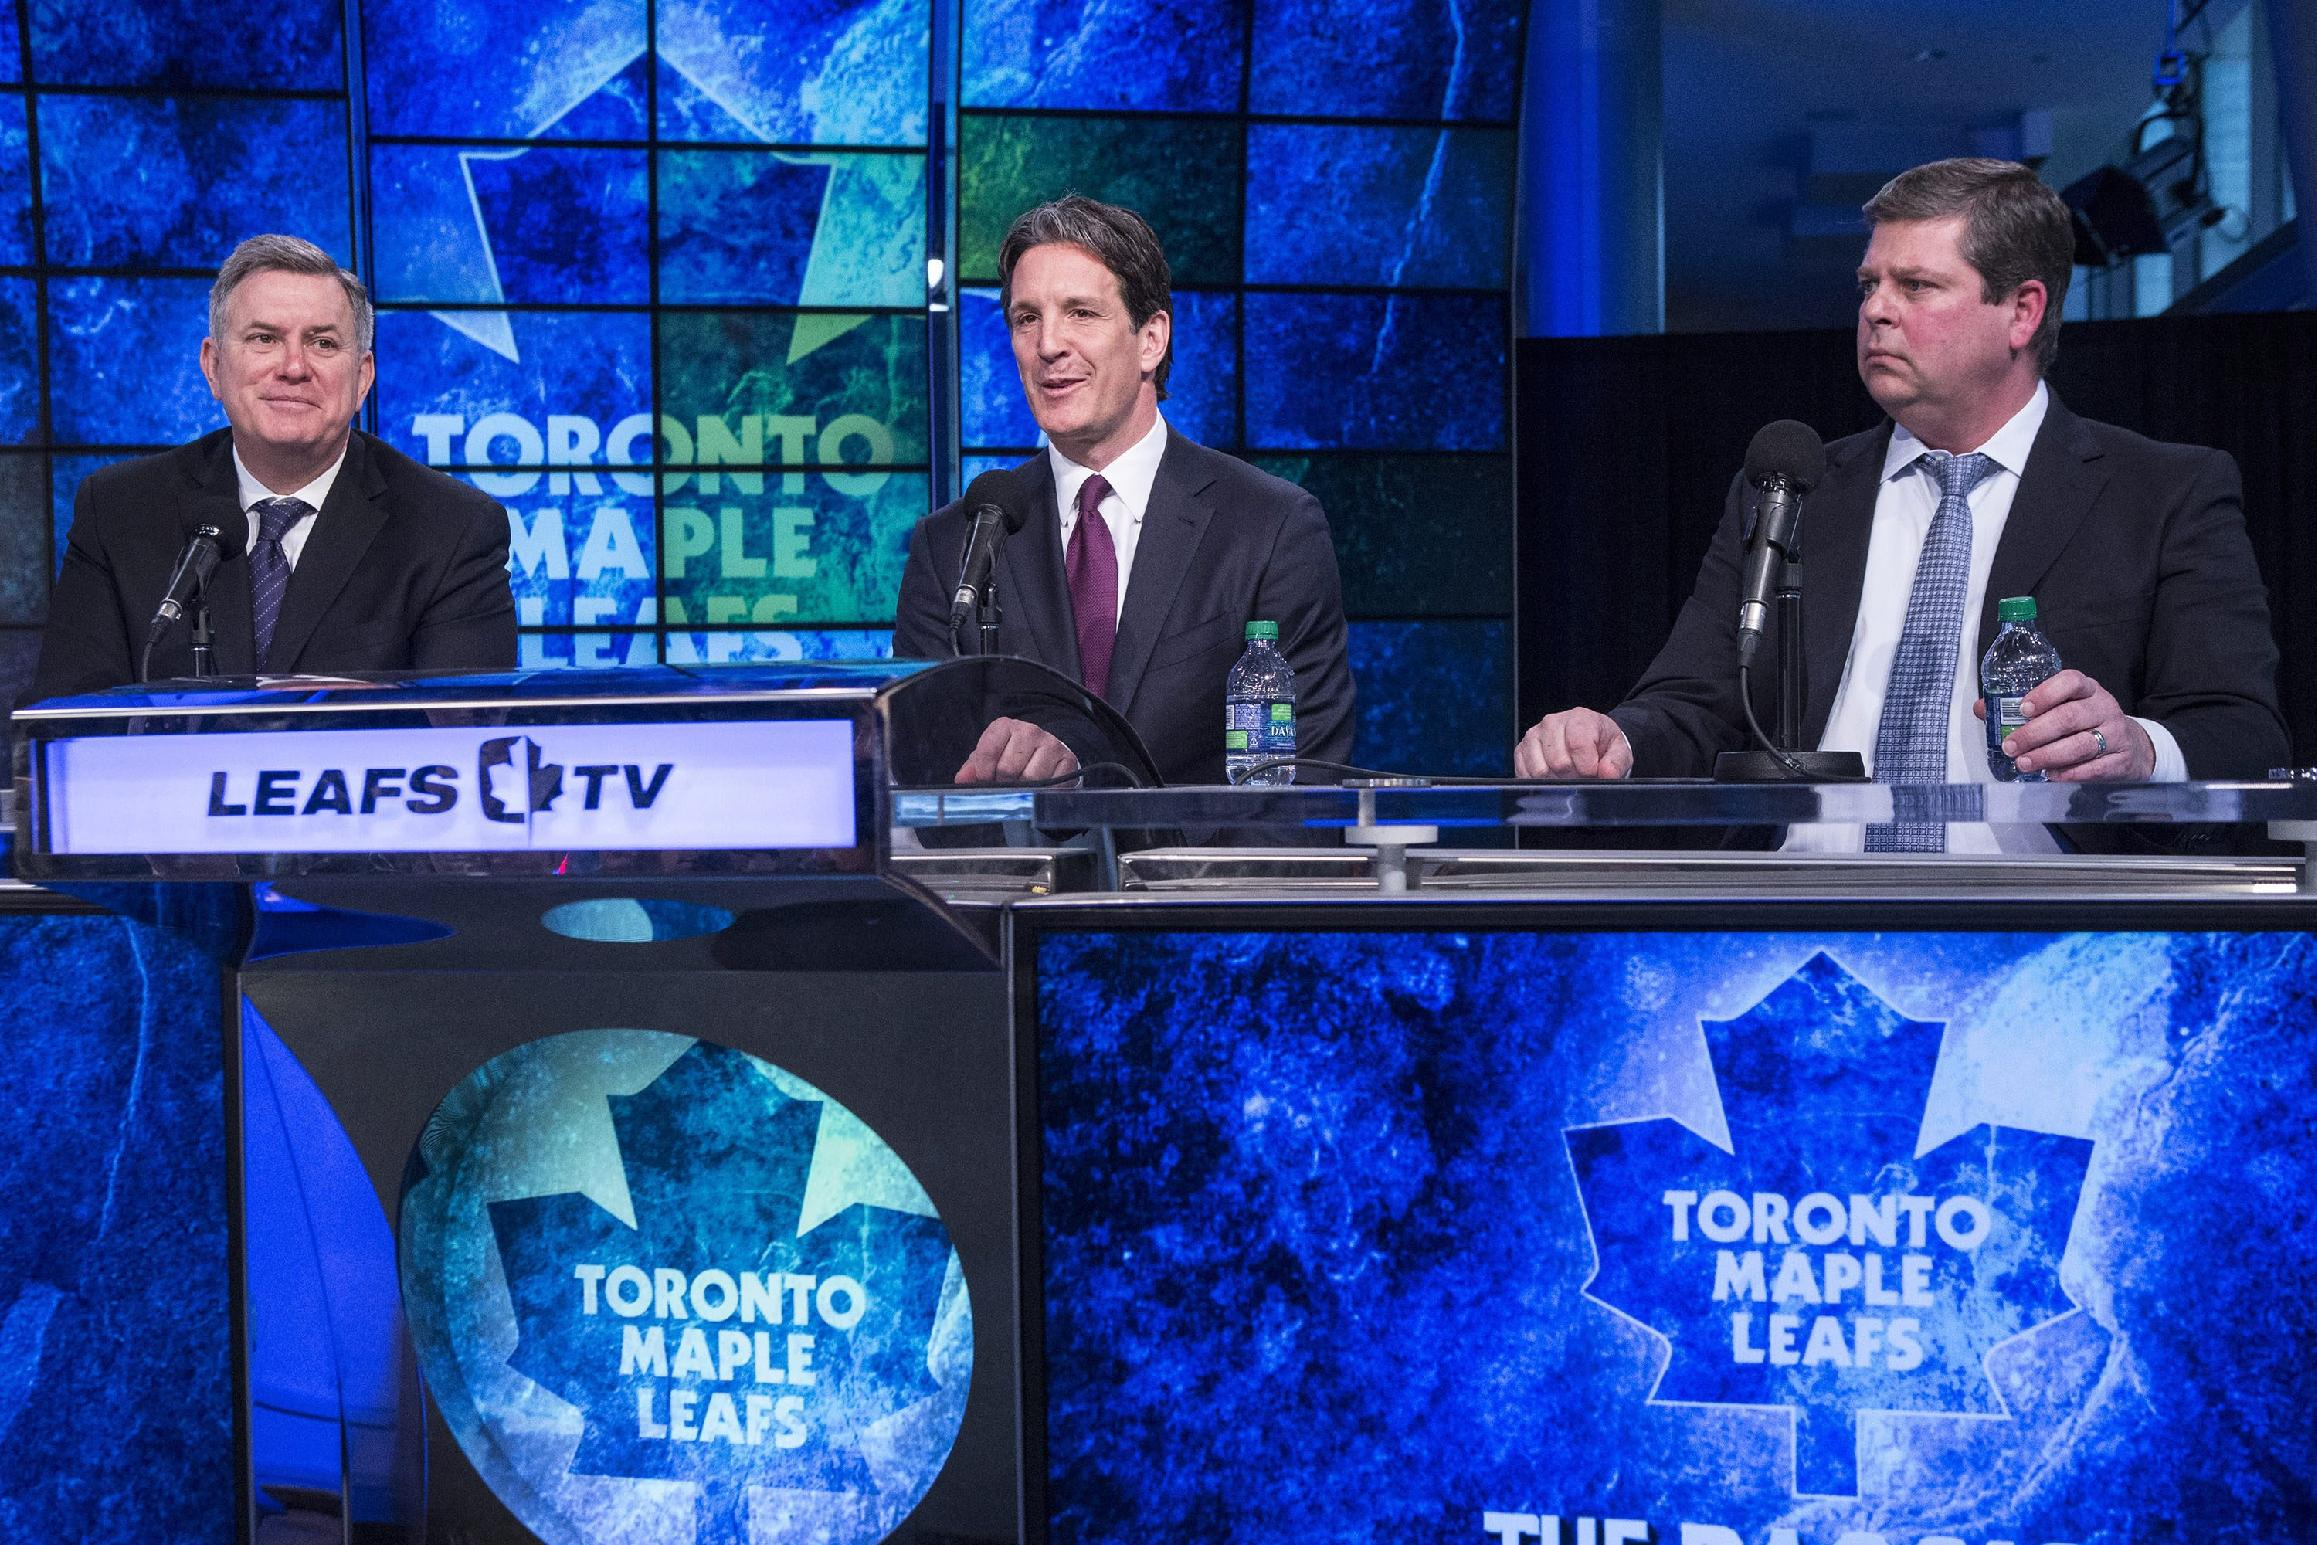 Brendan Shanahan's Low-key Power Grab With The Maple Leafs: 'I'm Not Here For Big Speeches'